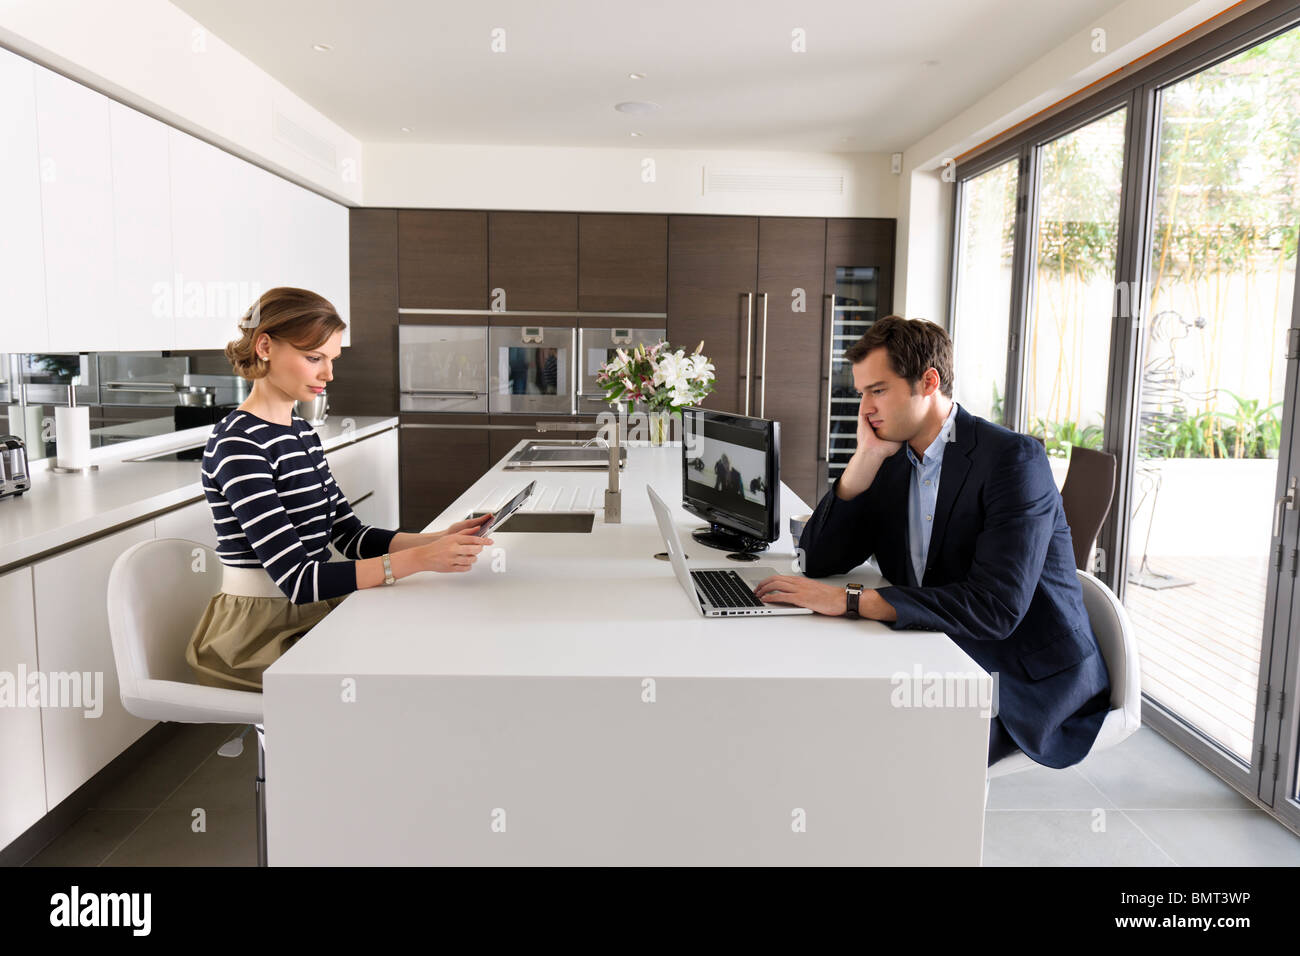 Couple looking at laptop and ipad in their high-tech kitchen. - Stock Image